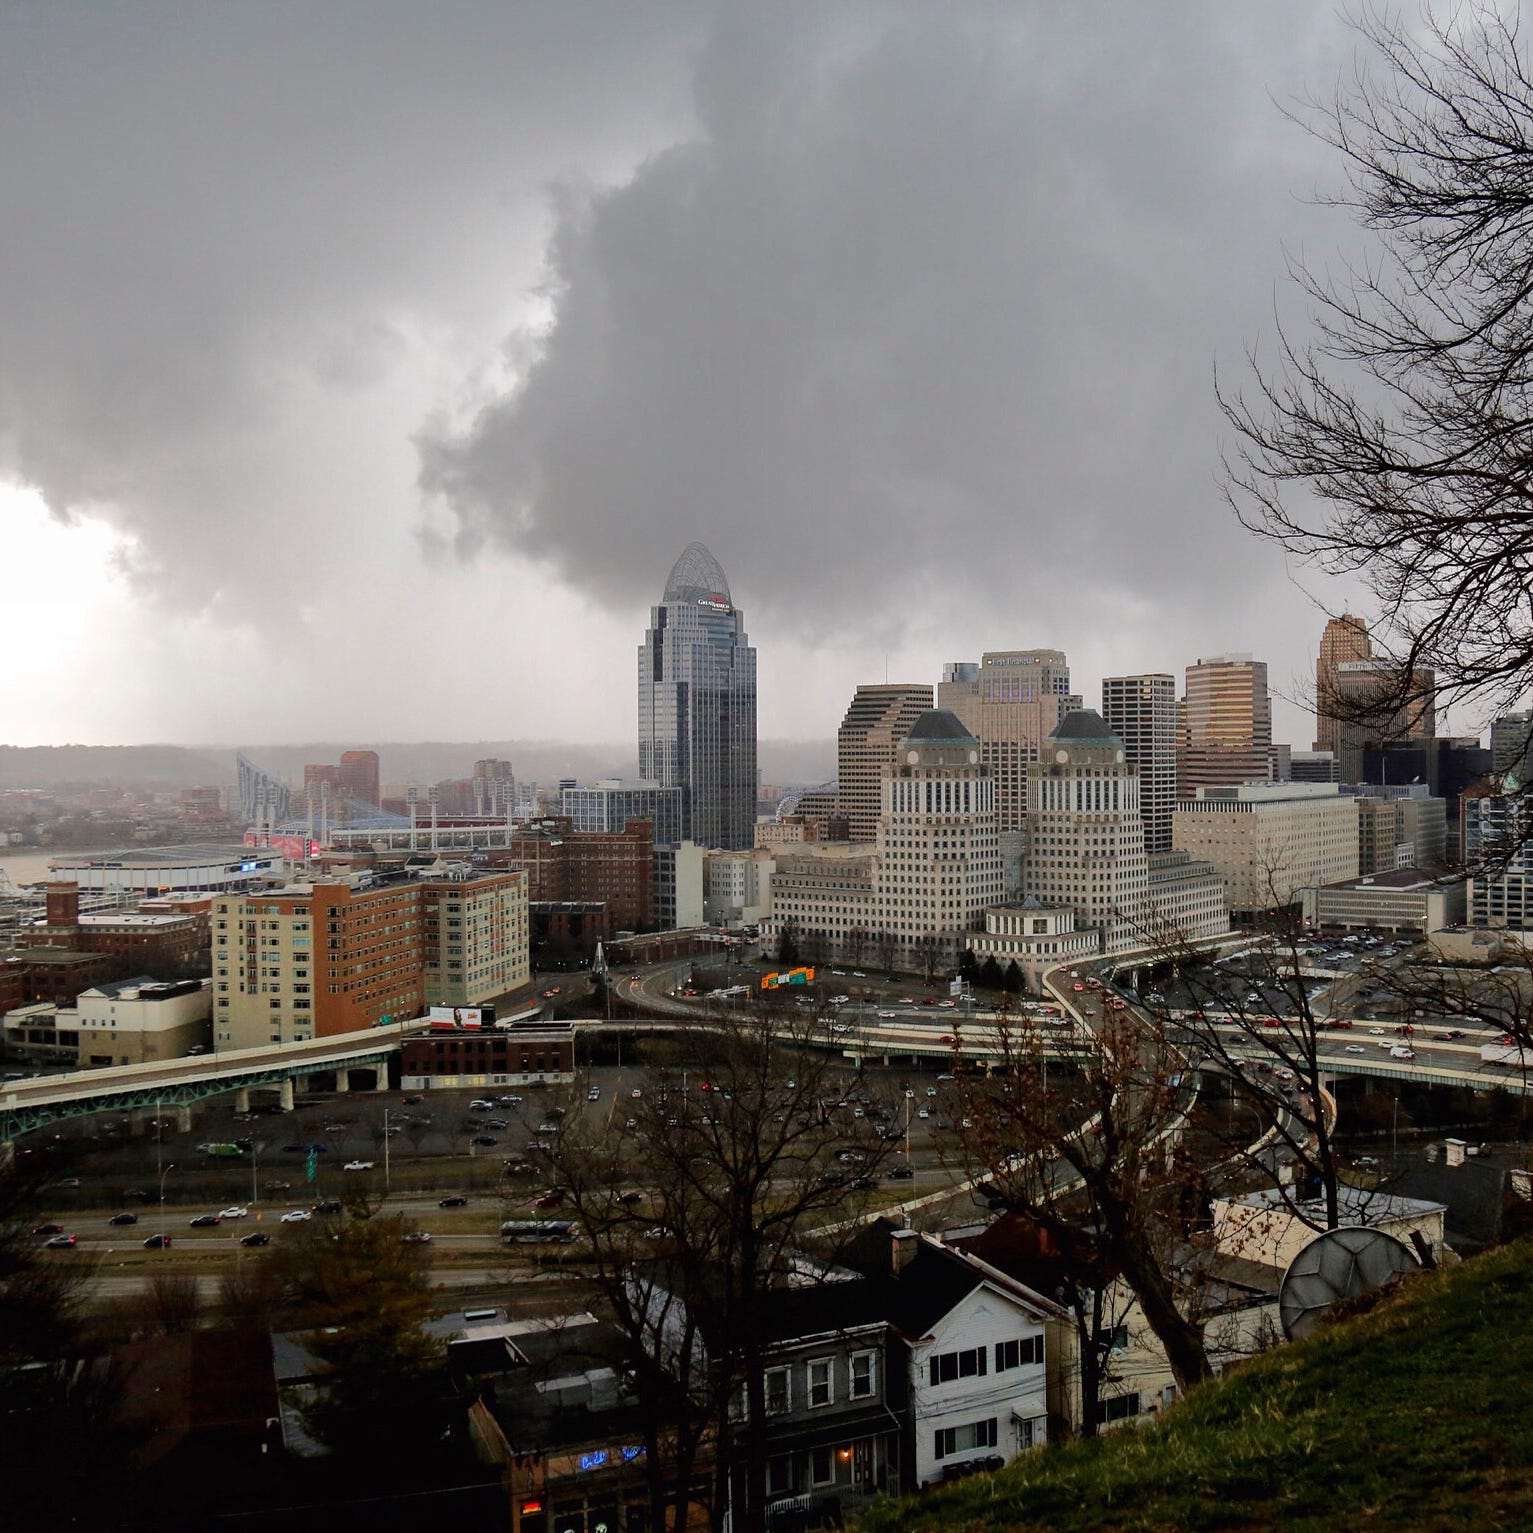 Cincinnati weather: Severe thunderstorm warning for Milford and Indian Hill